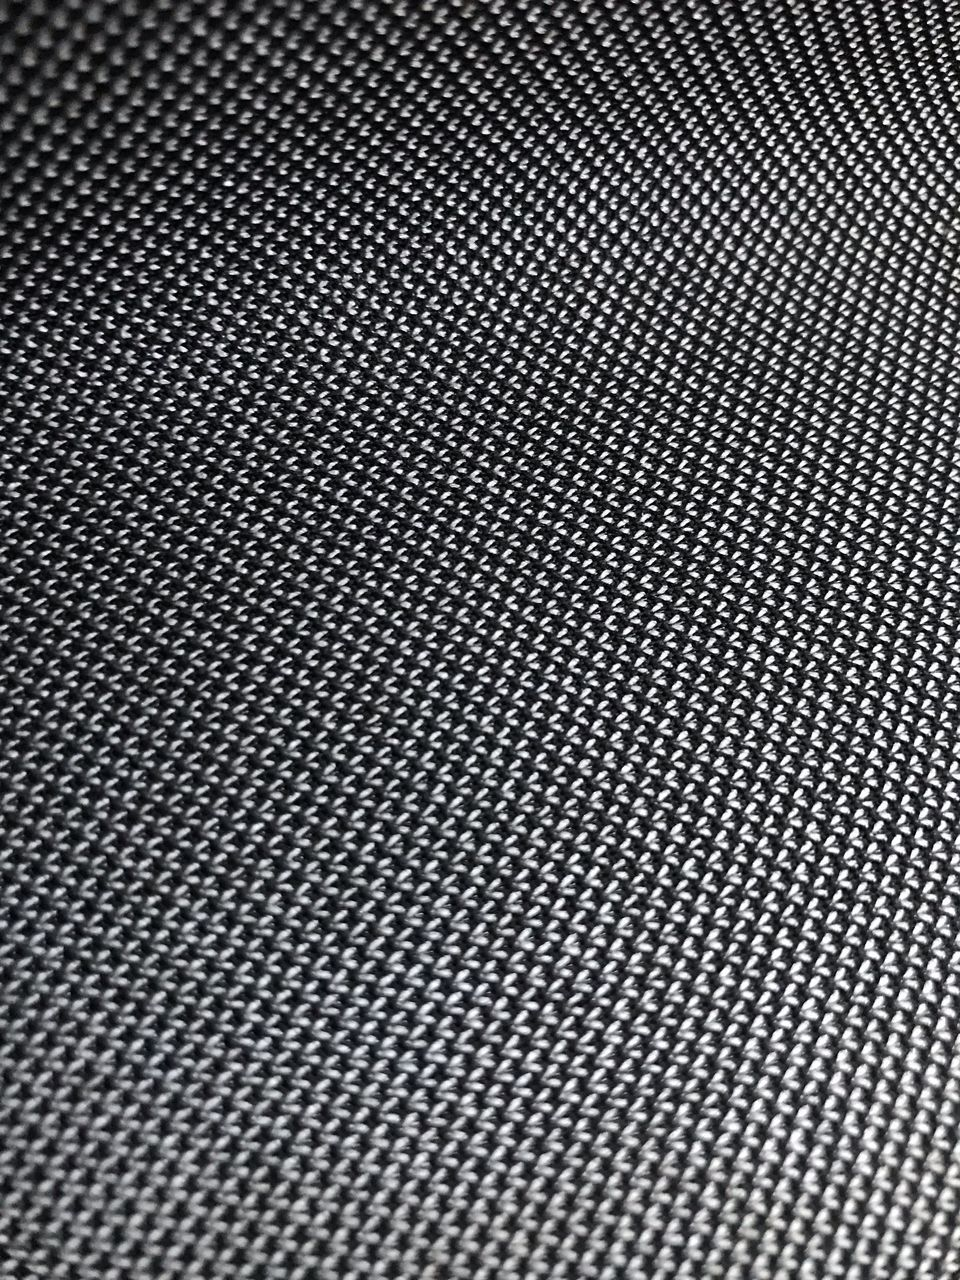 backgrounds, music, pattern, textured, technology, speaker, industry, close-up, black color, metal, abstract, wire, audio equipment, equipment, electronics industry, noise, macro, grid, no people, extreme close-up, dark, electrical equipment, textured effect, electronics store, silver colored, chrome